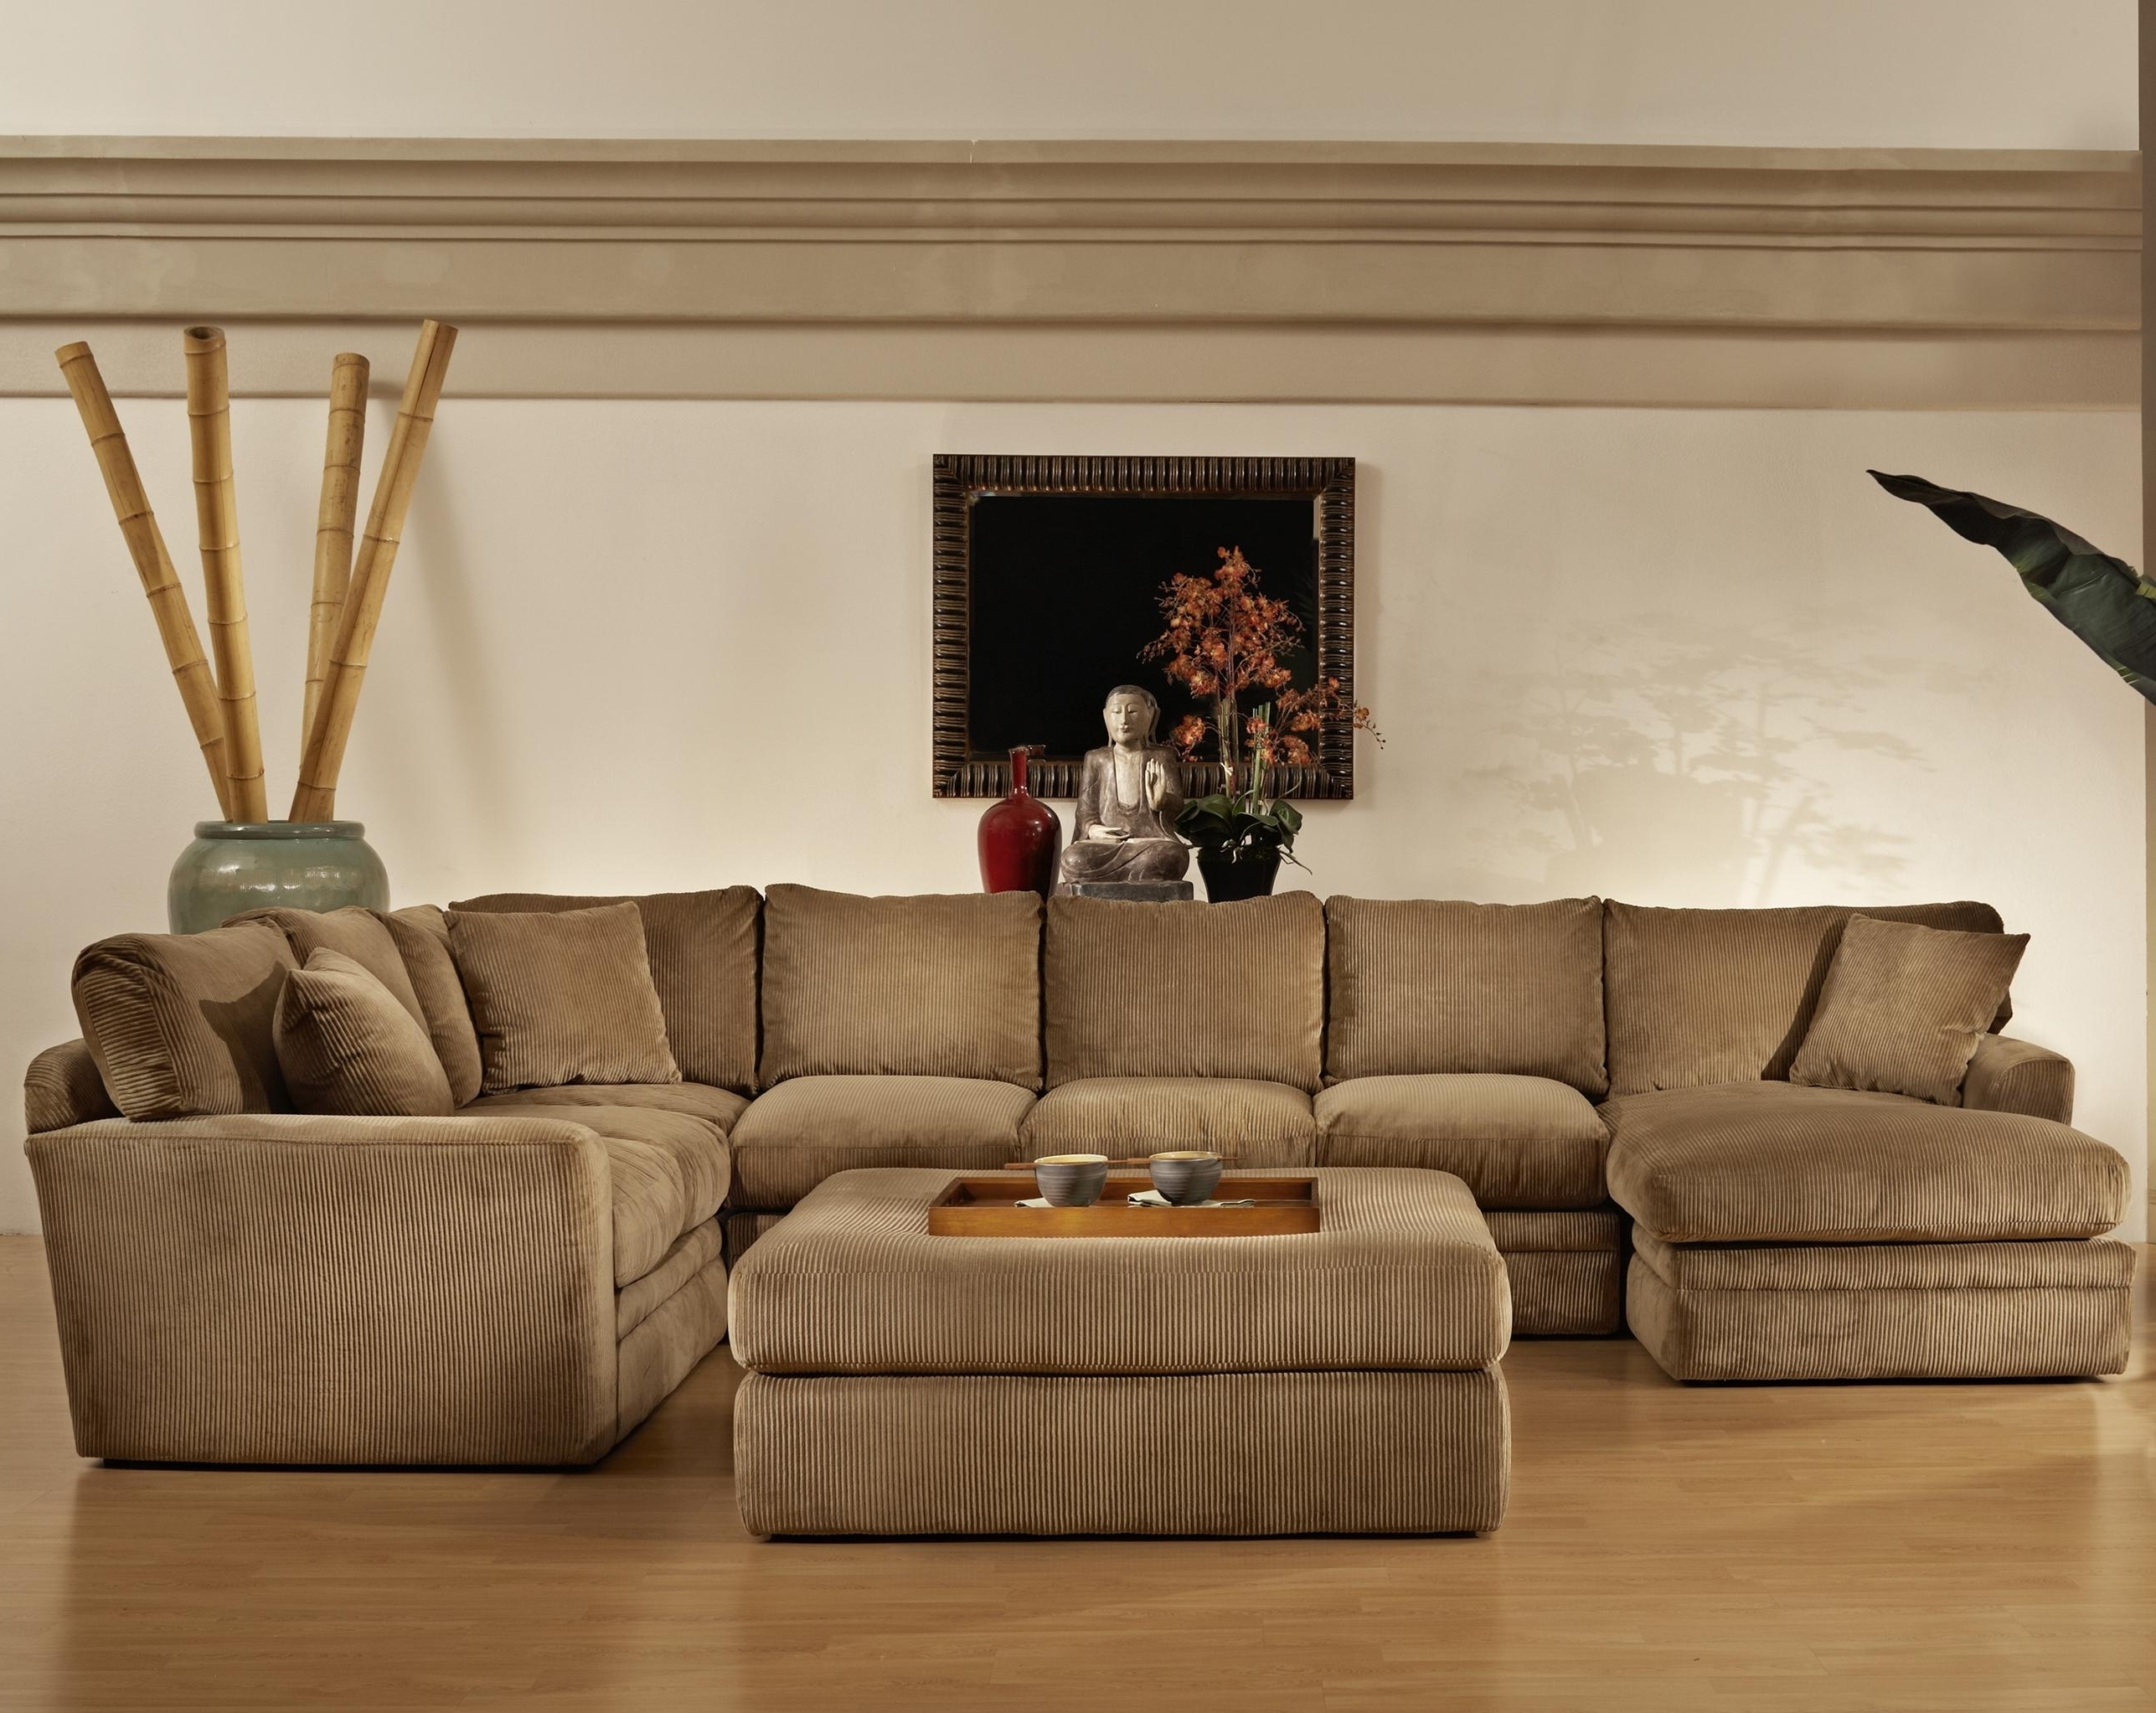 Transitional Style Extra Large Sectional Sofas With Chaise Baker With Most Current Large Comfortable Sectional Sofas (View 15 of 15)